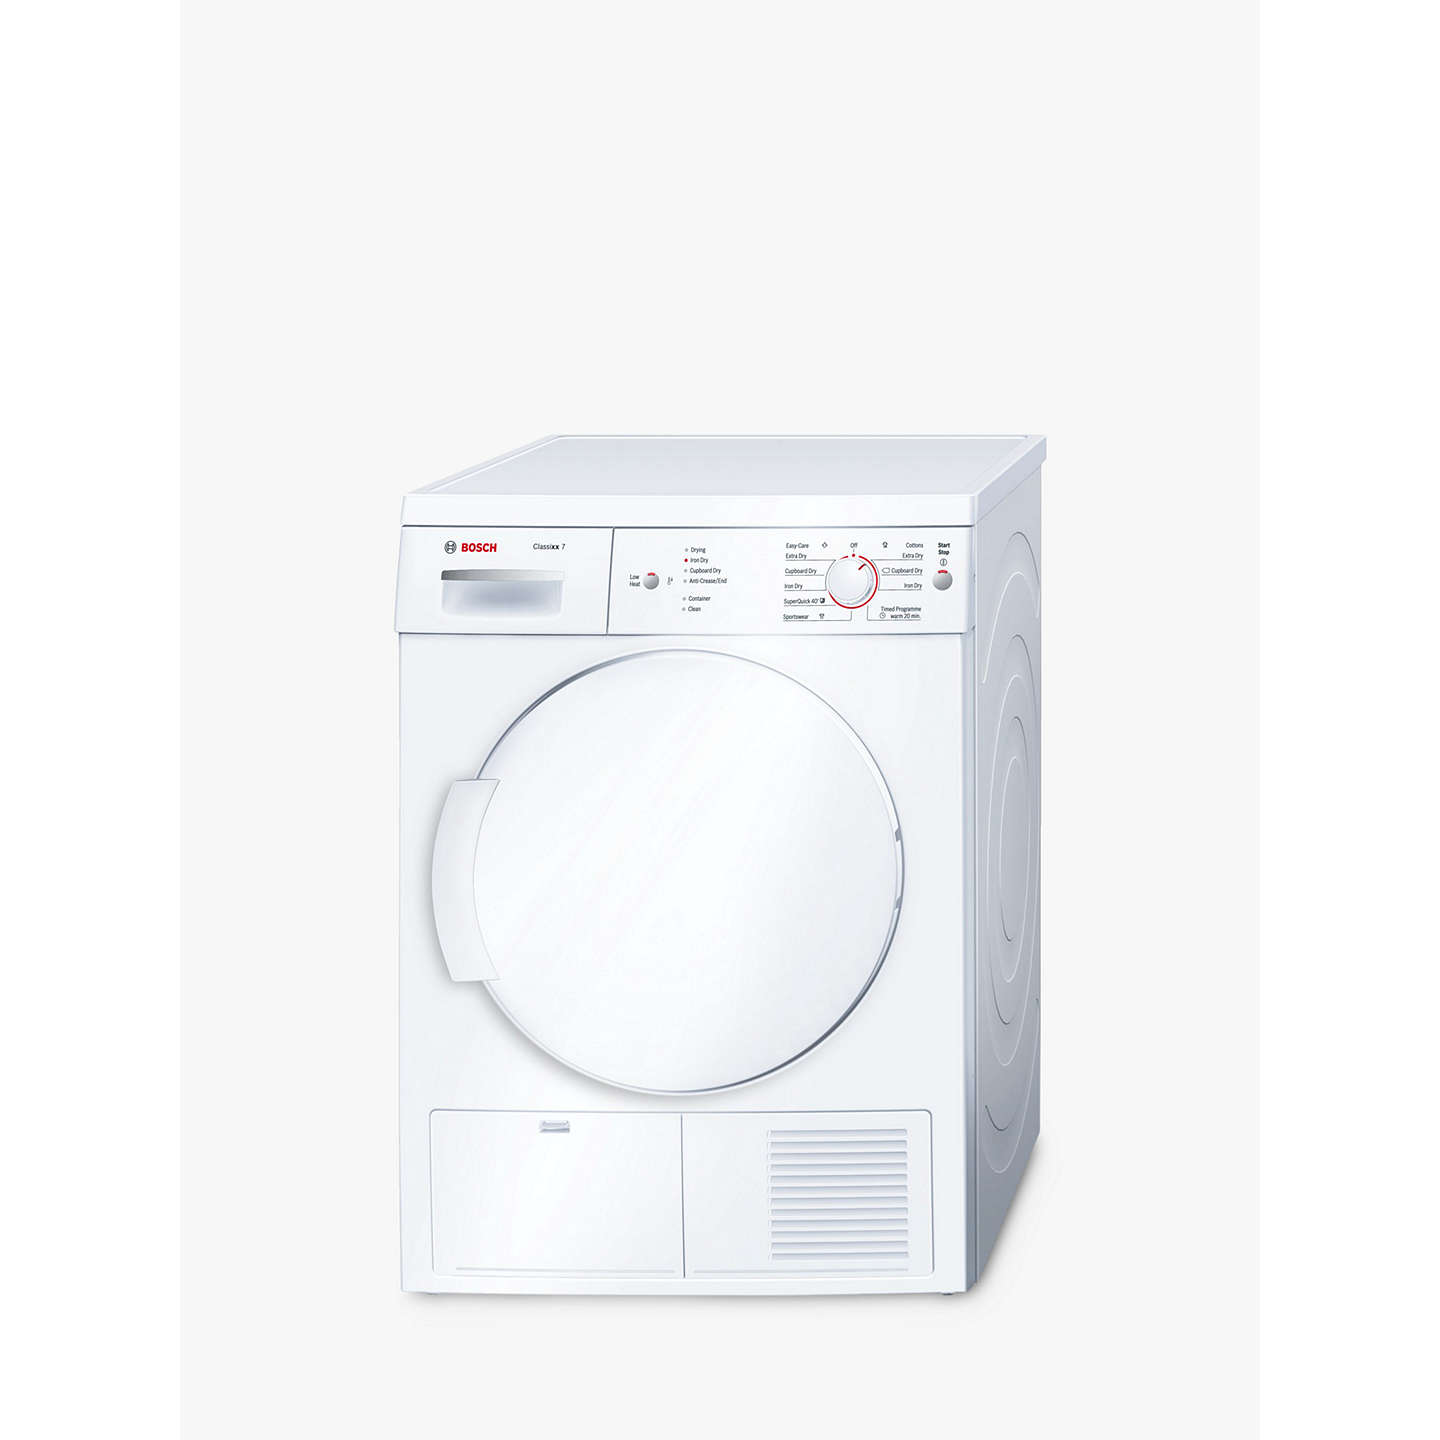 Bosch classixx wte84106gb sensor condenser tumble dryer 7kg load b buybosch classixx wte84106gb sensor condenser tumble dryer 7kg load b energy rating white sciox Image collections